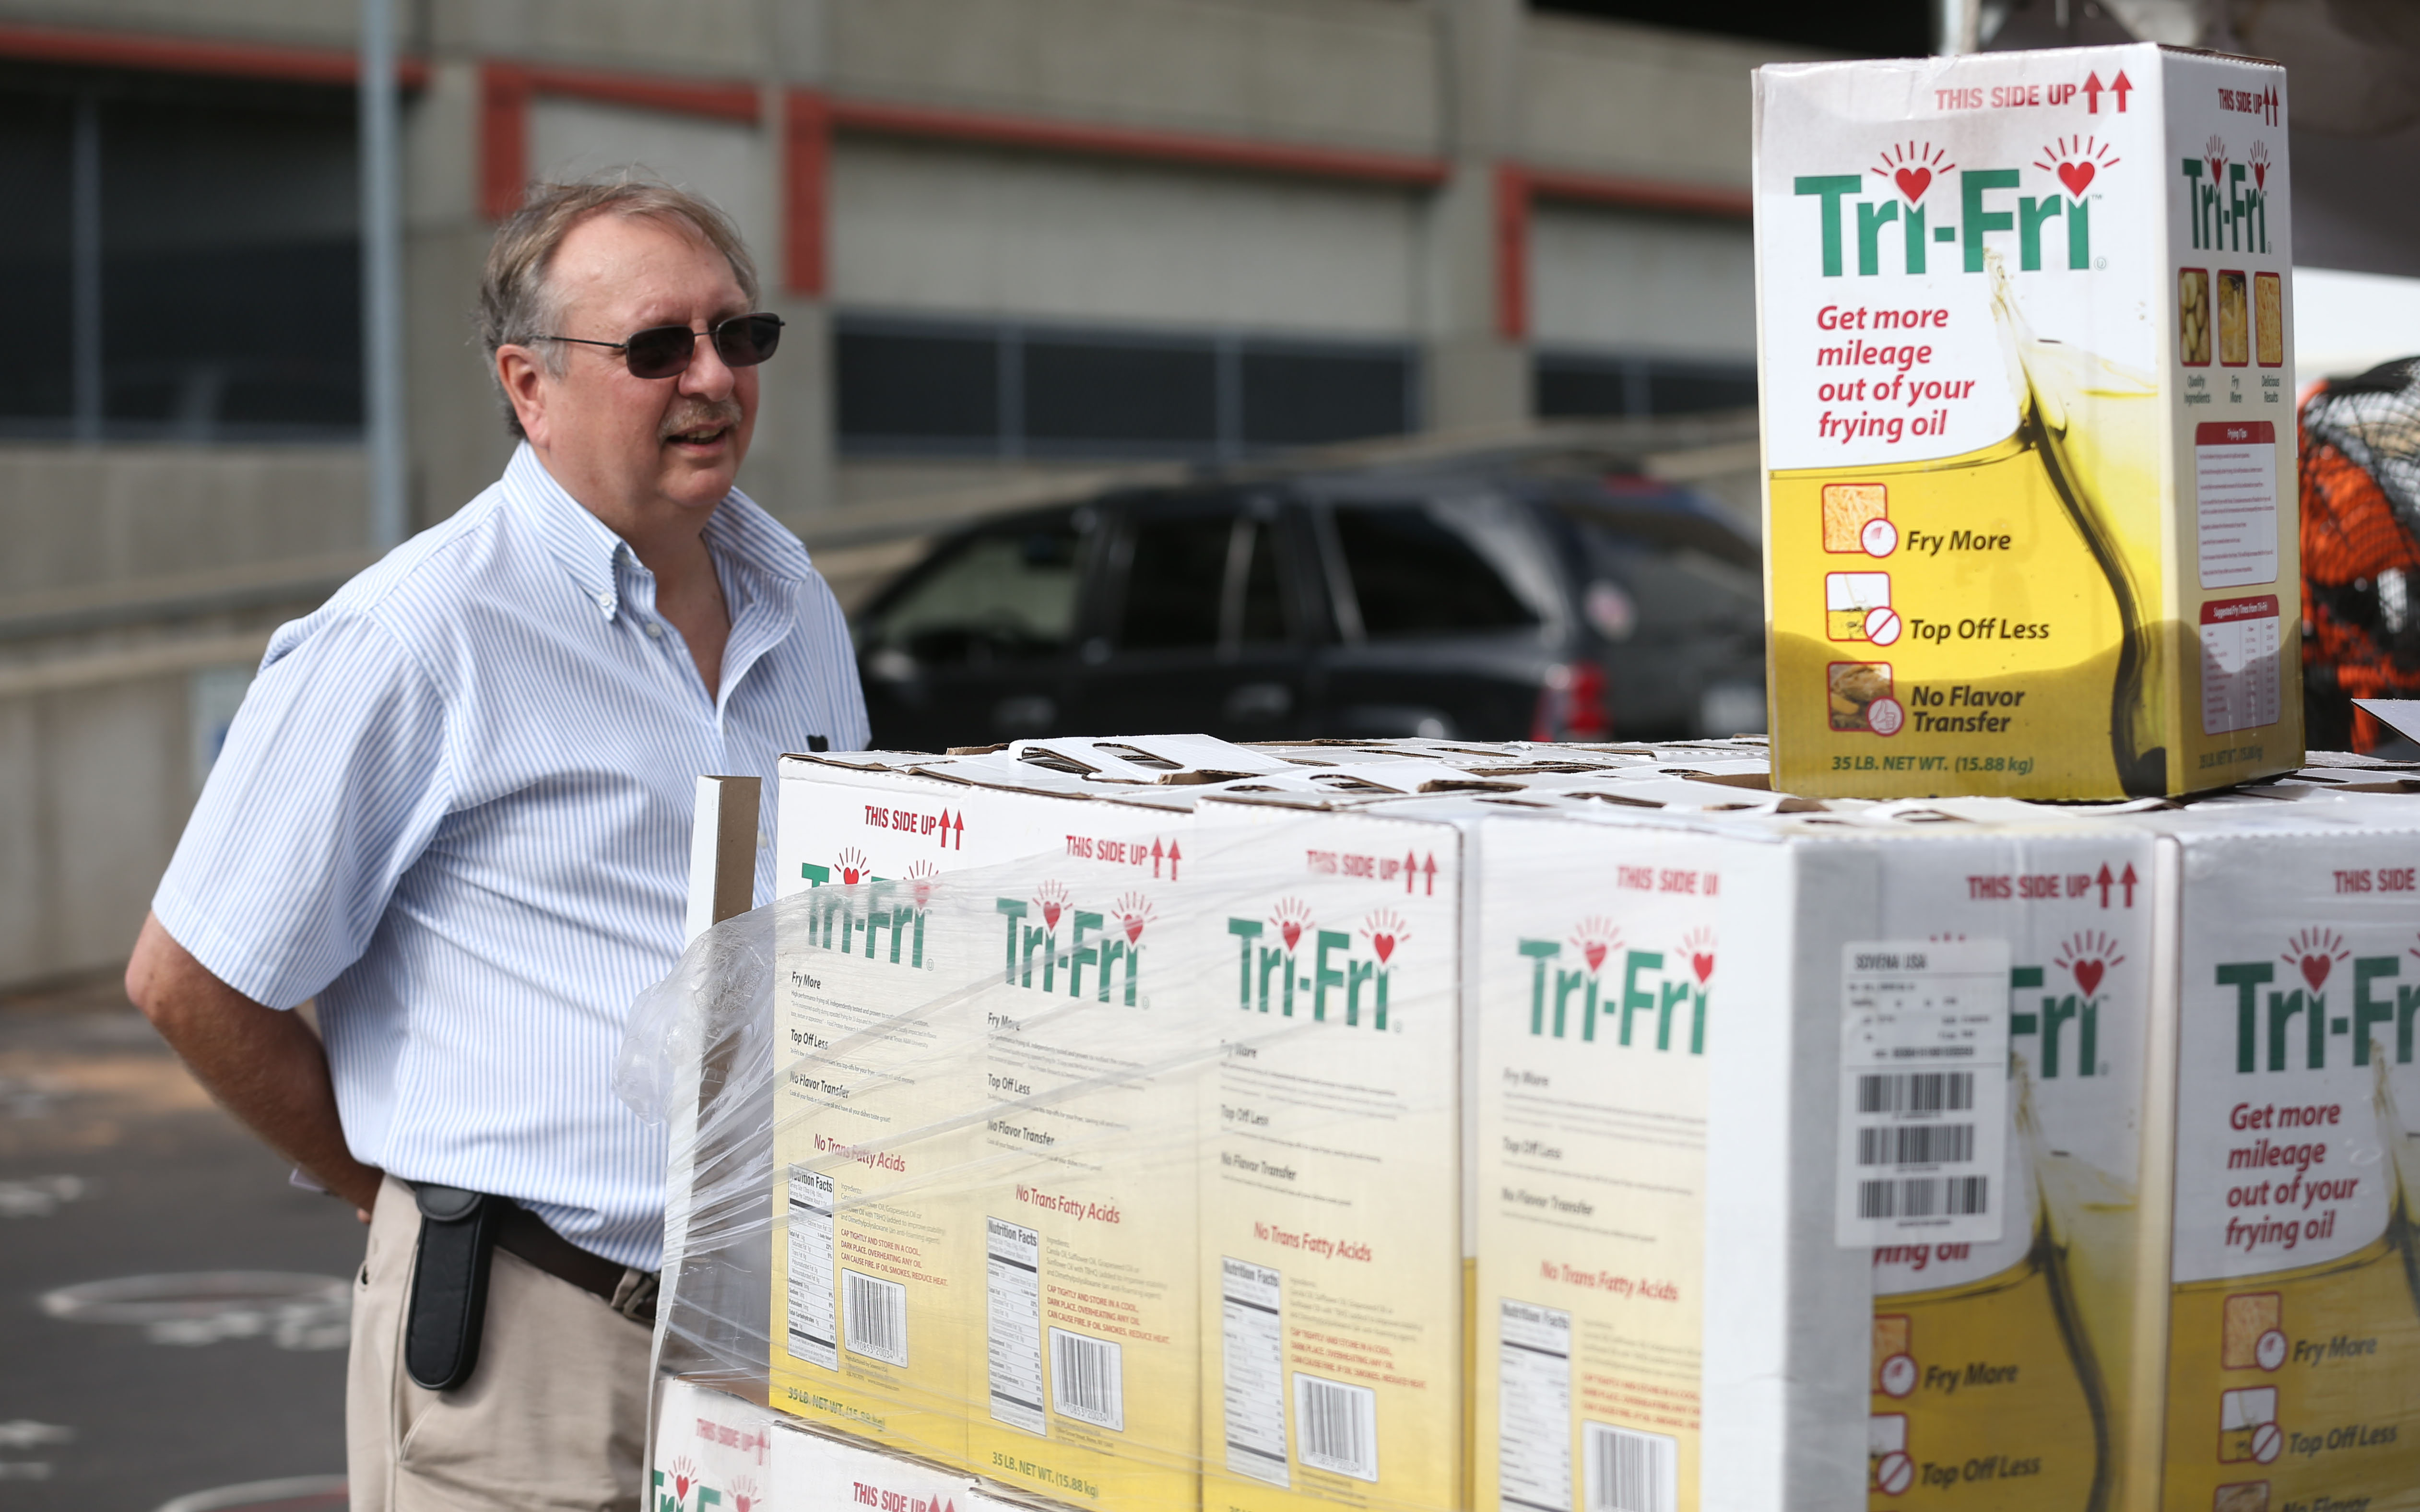 Mark Kowalski, the deputy director of Environmental Health for the county health department, looks over some of the supply of oil used to fry the wings as his inspectors fanned out at Wing Fest. (Sharon Cantillon/Buffalo News)